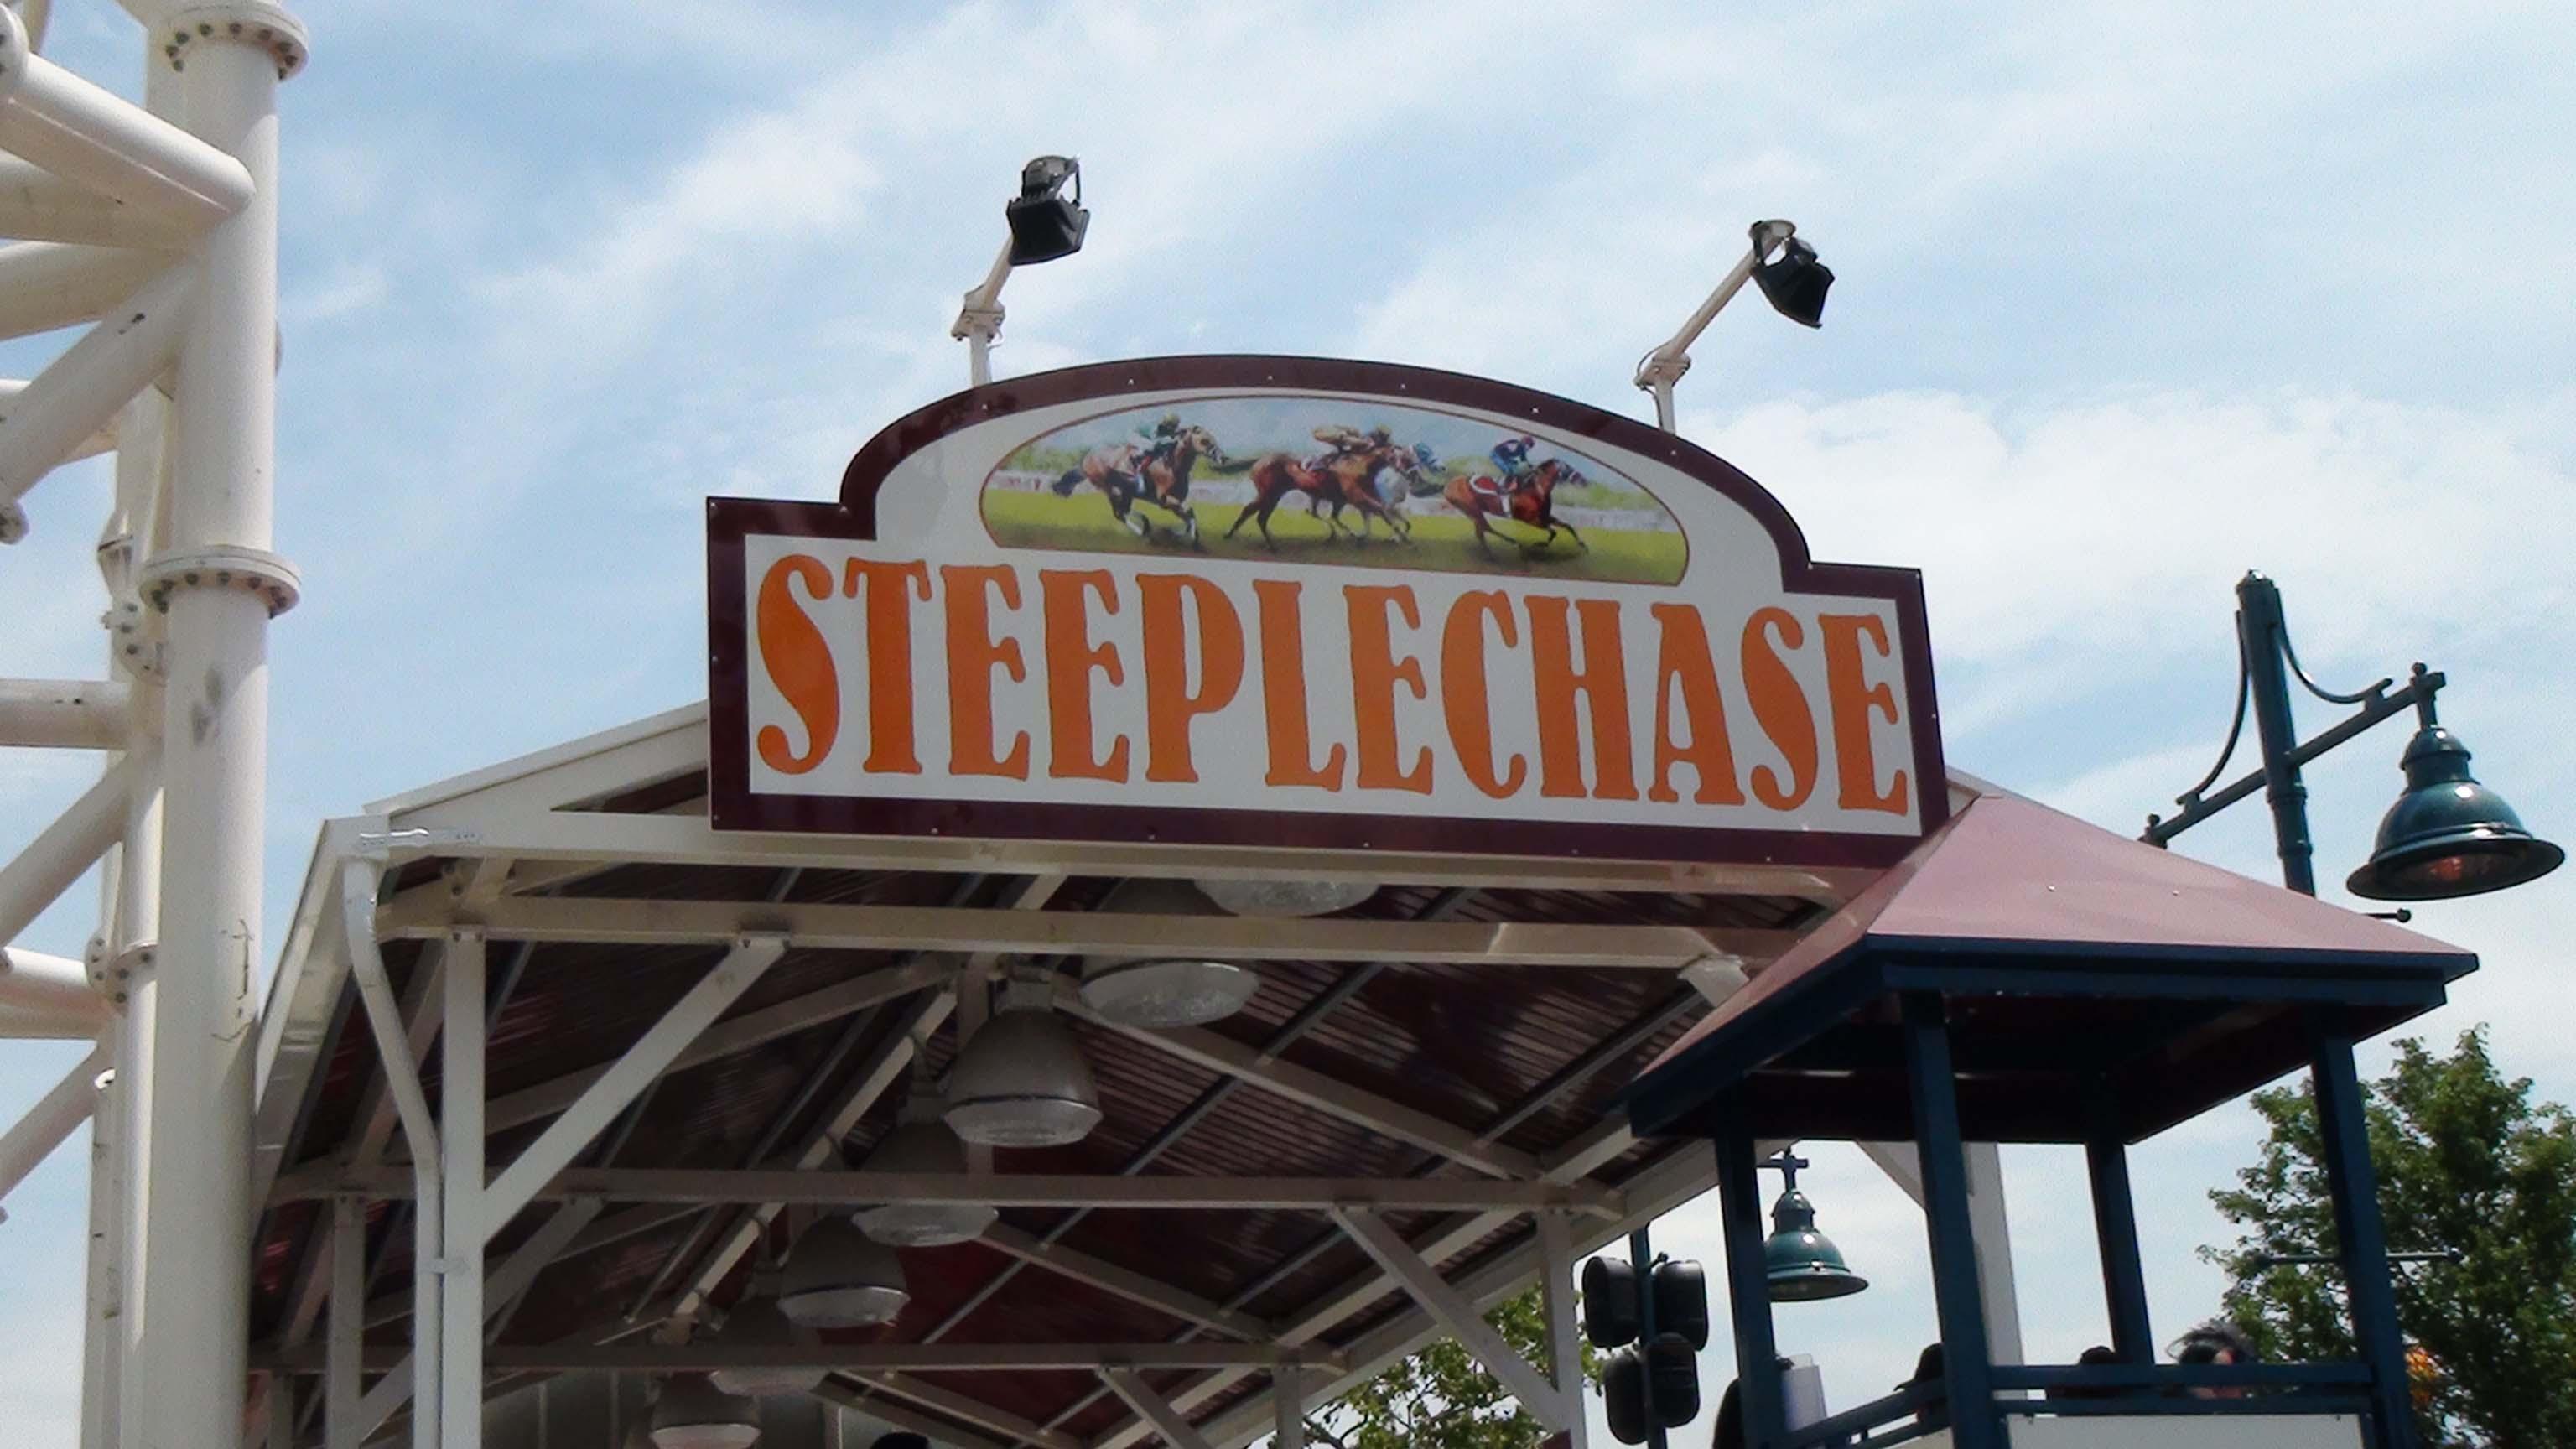 Luna park coney island steeplechase for Steeple chase